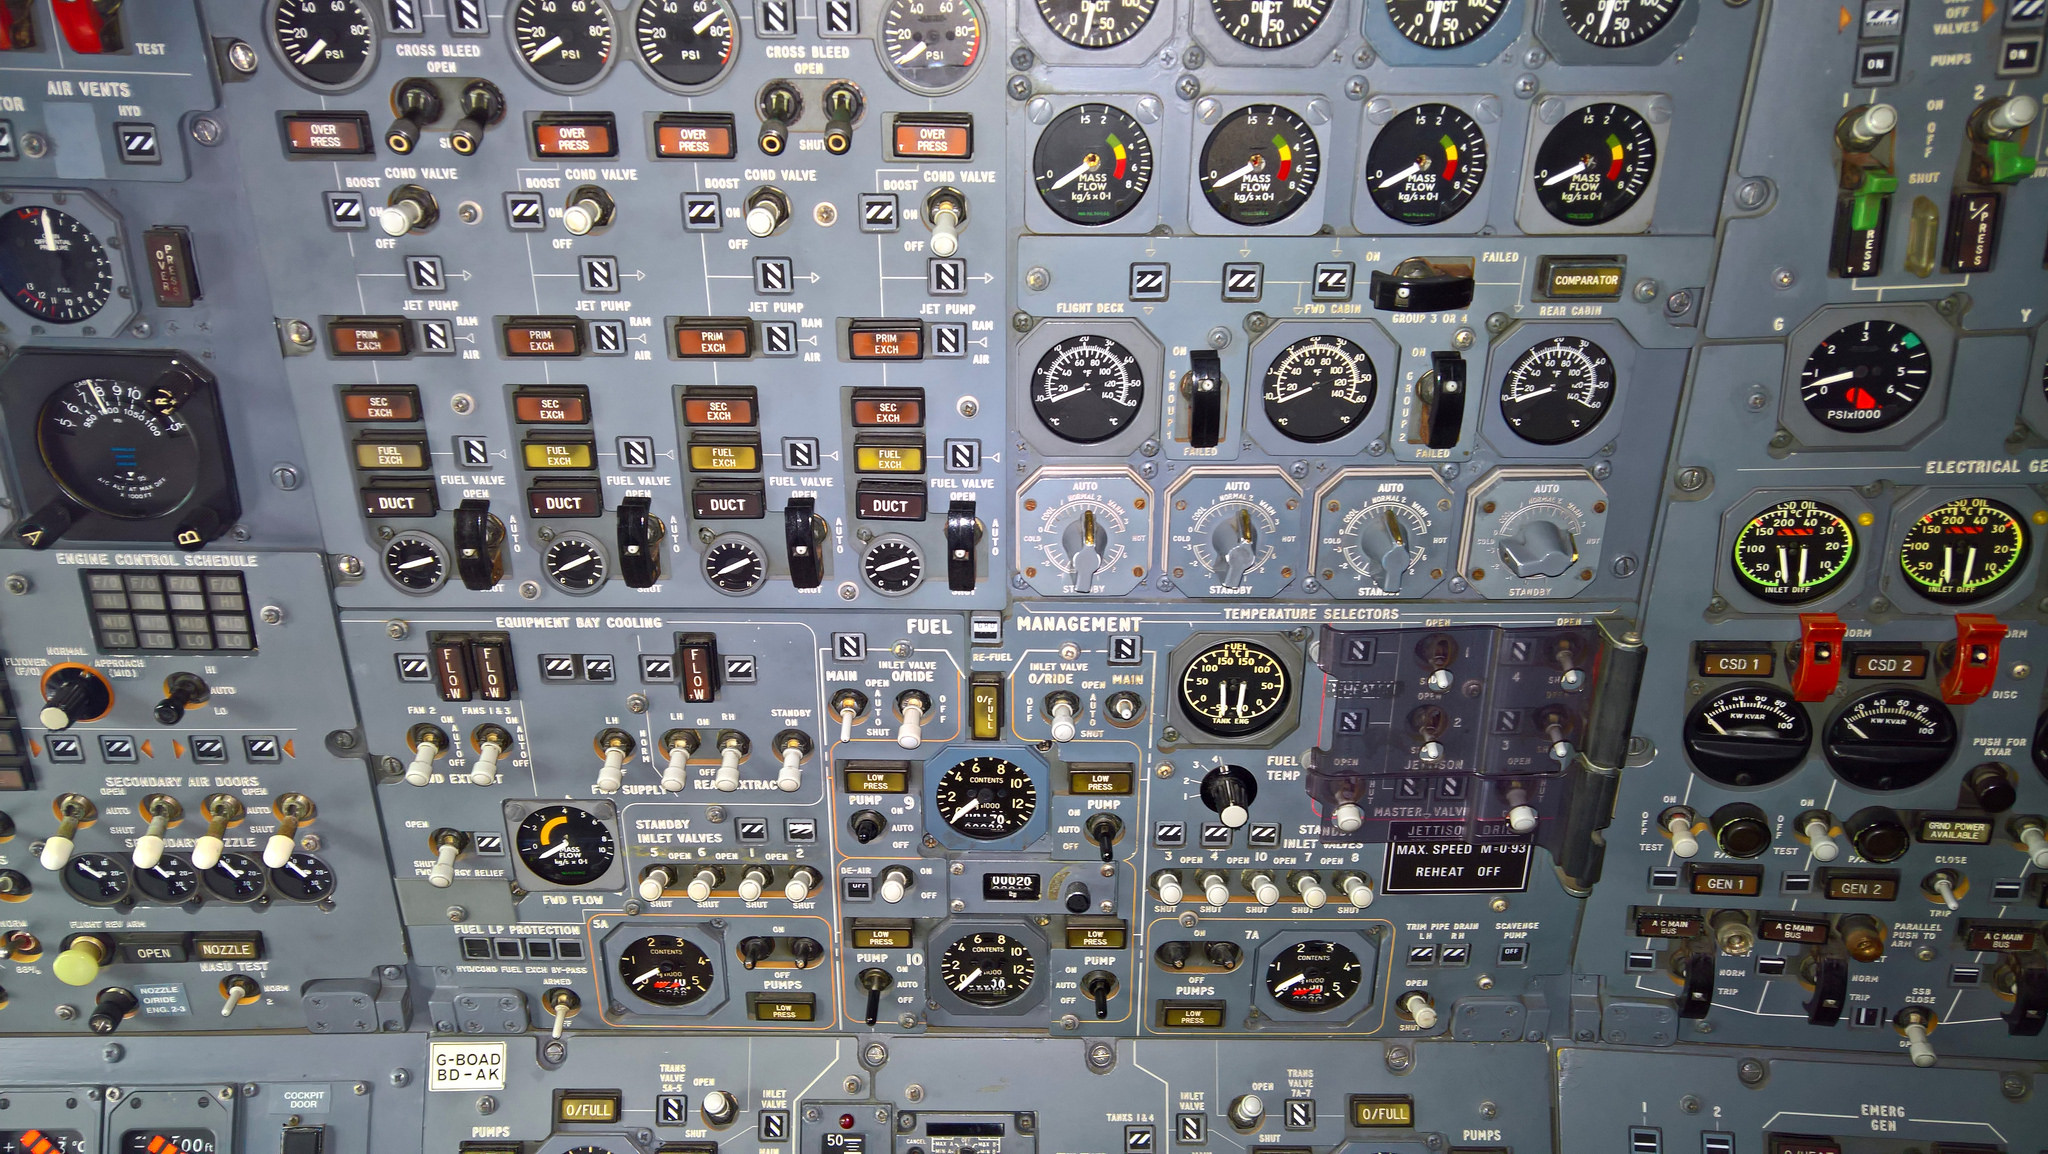 Illustration : un cockpit de Concorde (Rob Alter sur Flickr)